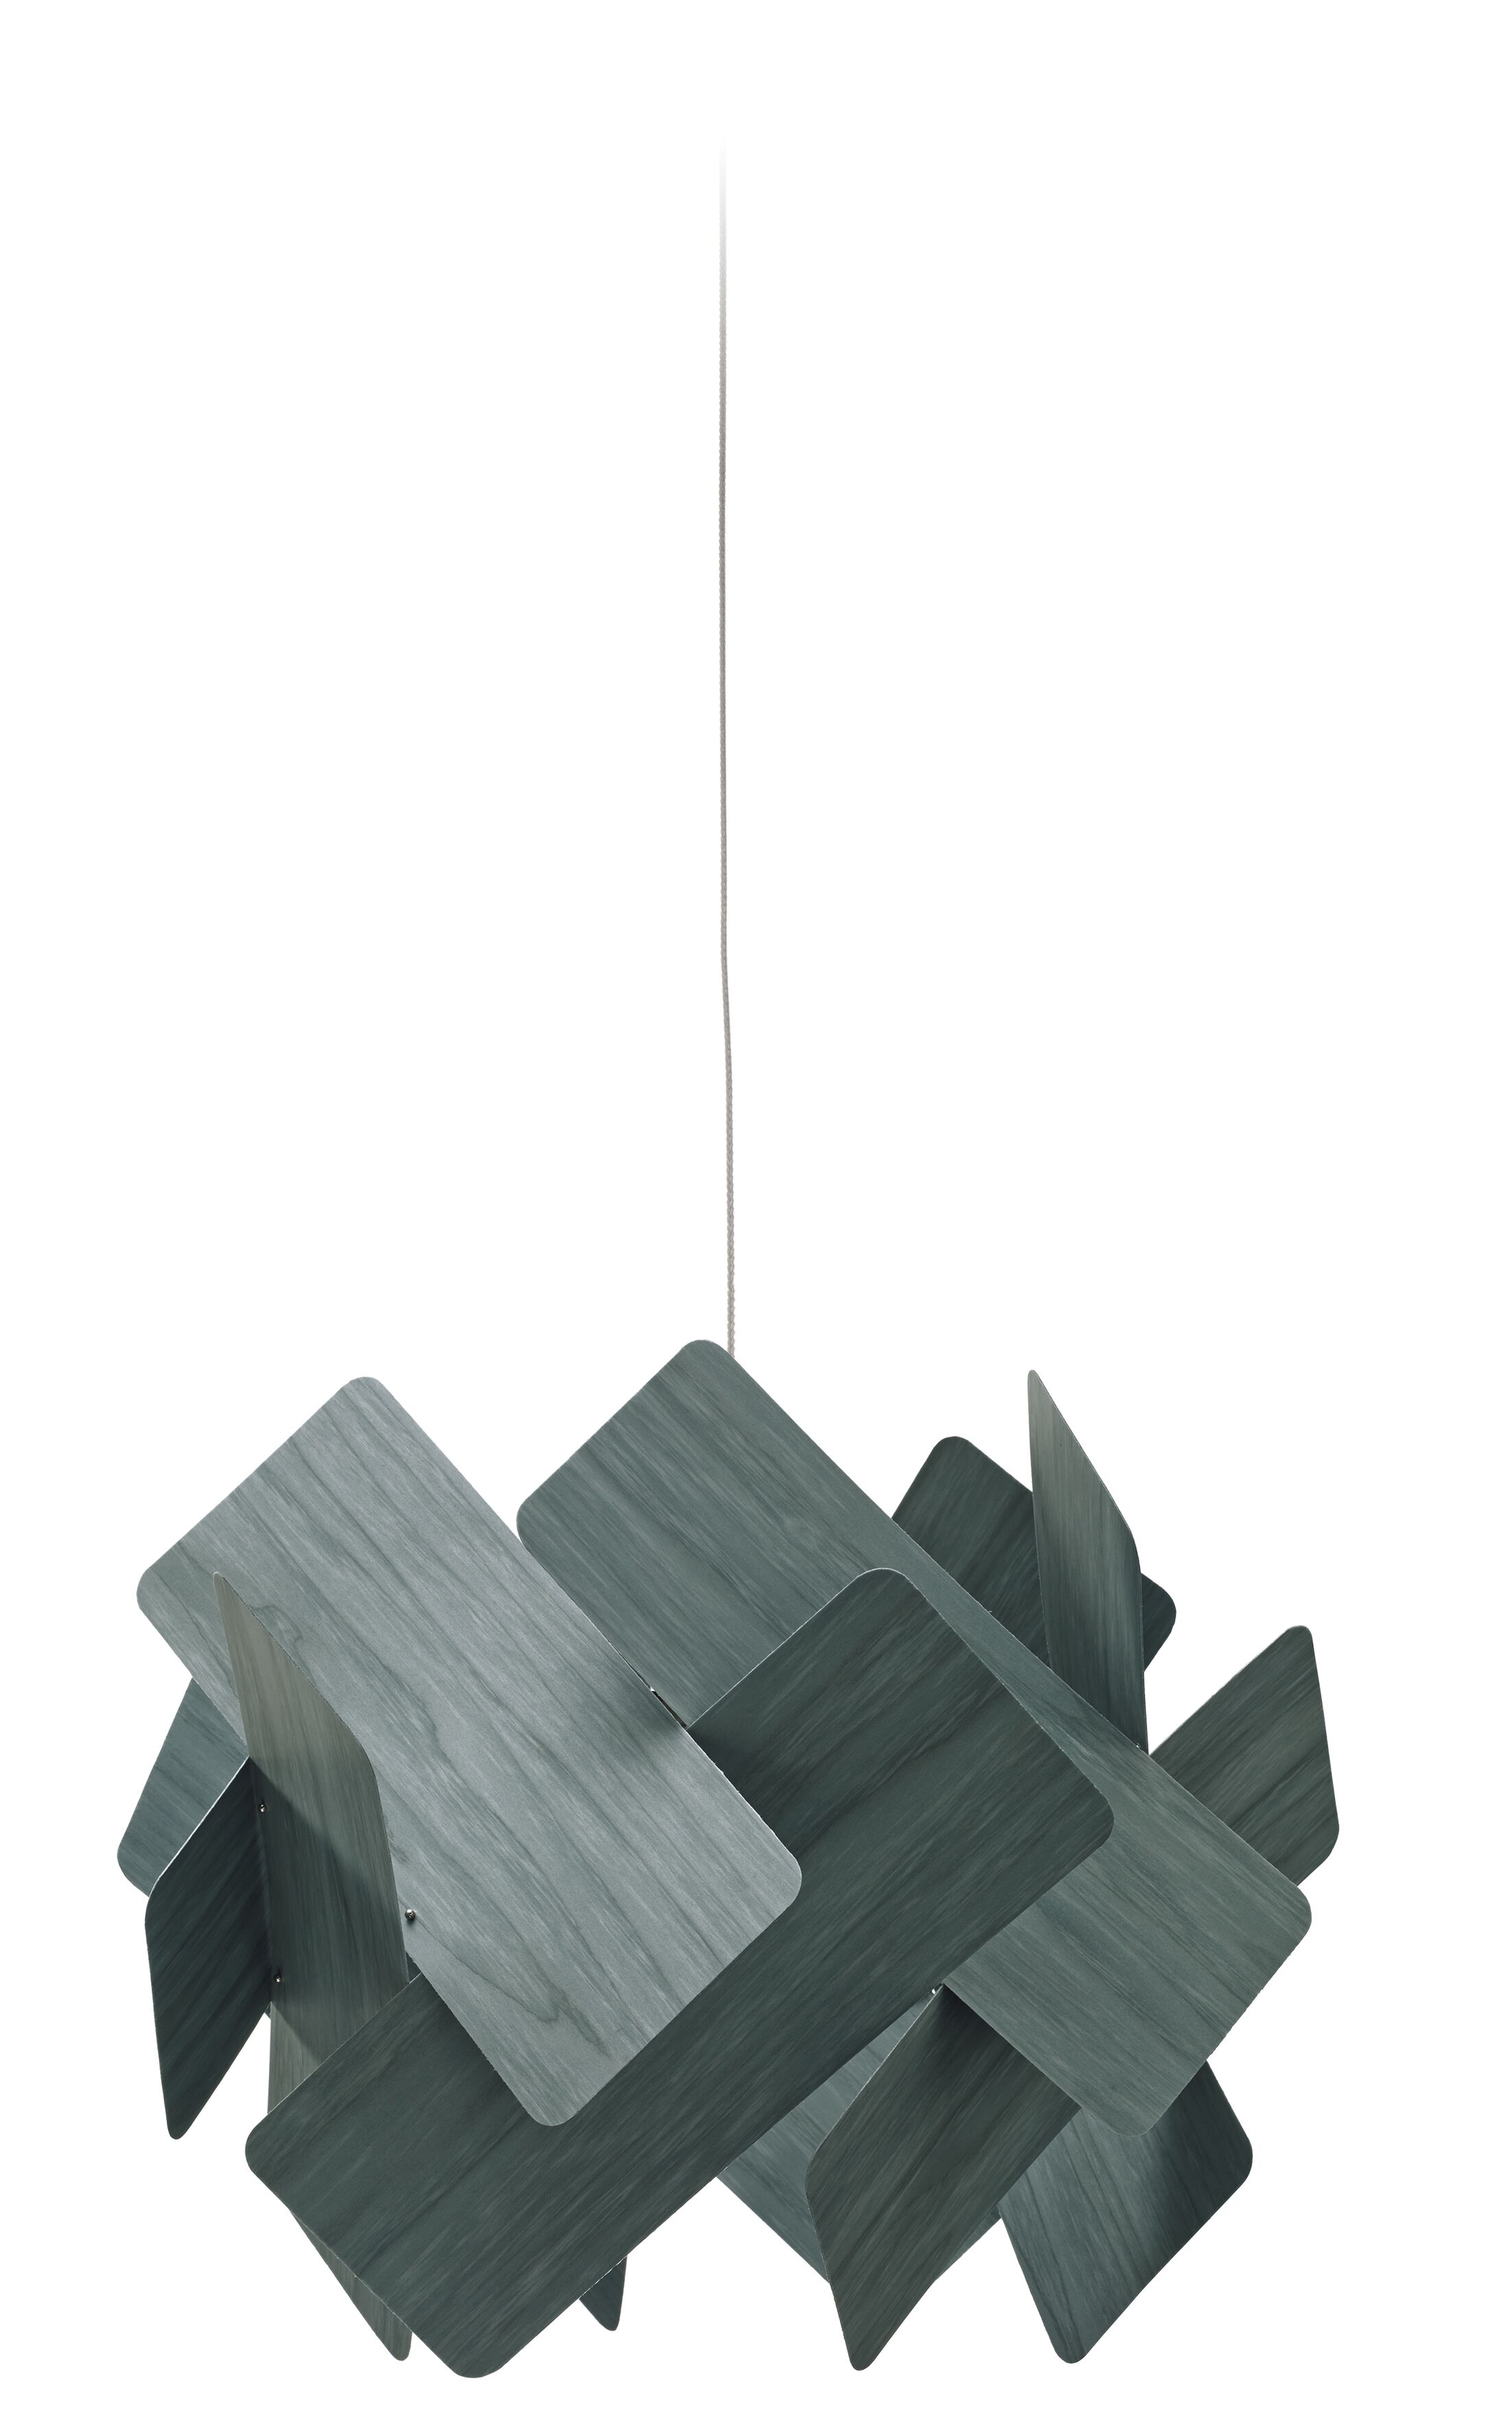 Escape 1-Light LED Geometric Pendant Features: GU24 Base, Shade Color: Turquoise